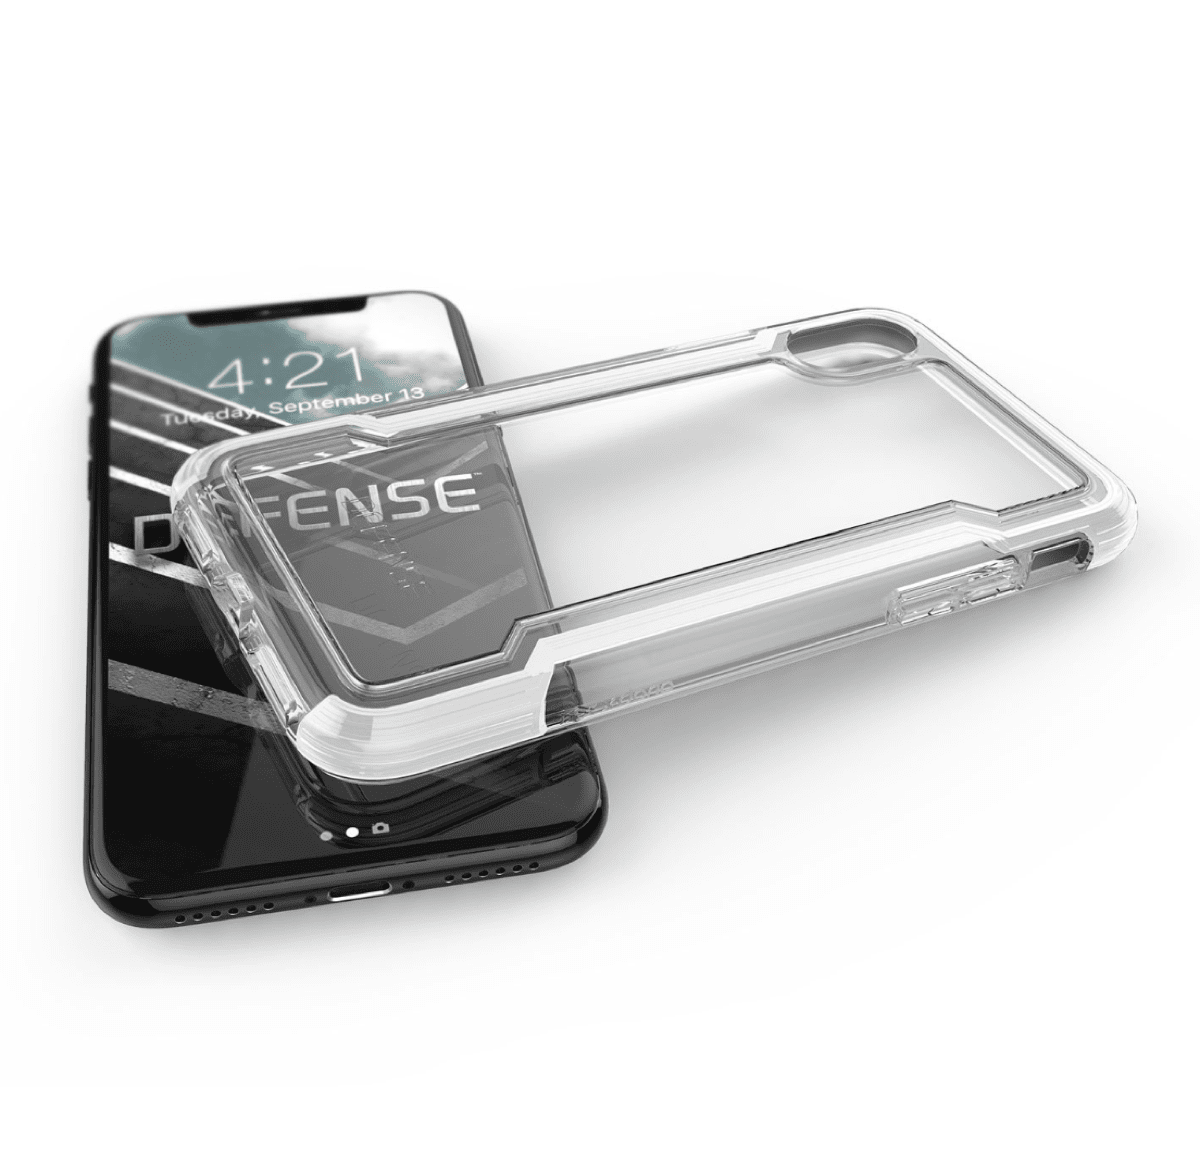 8503a0f550 6 Clear iPhone X Cases to Show Off Your Purchase - The Mac Observer